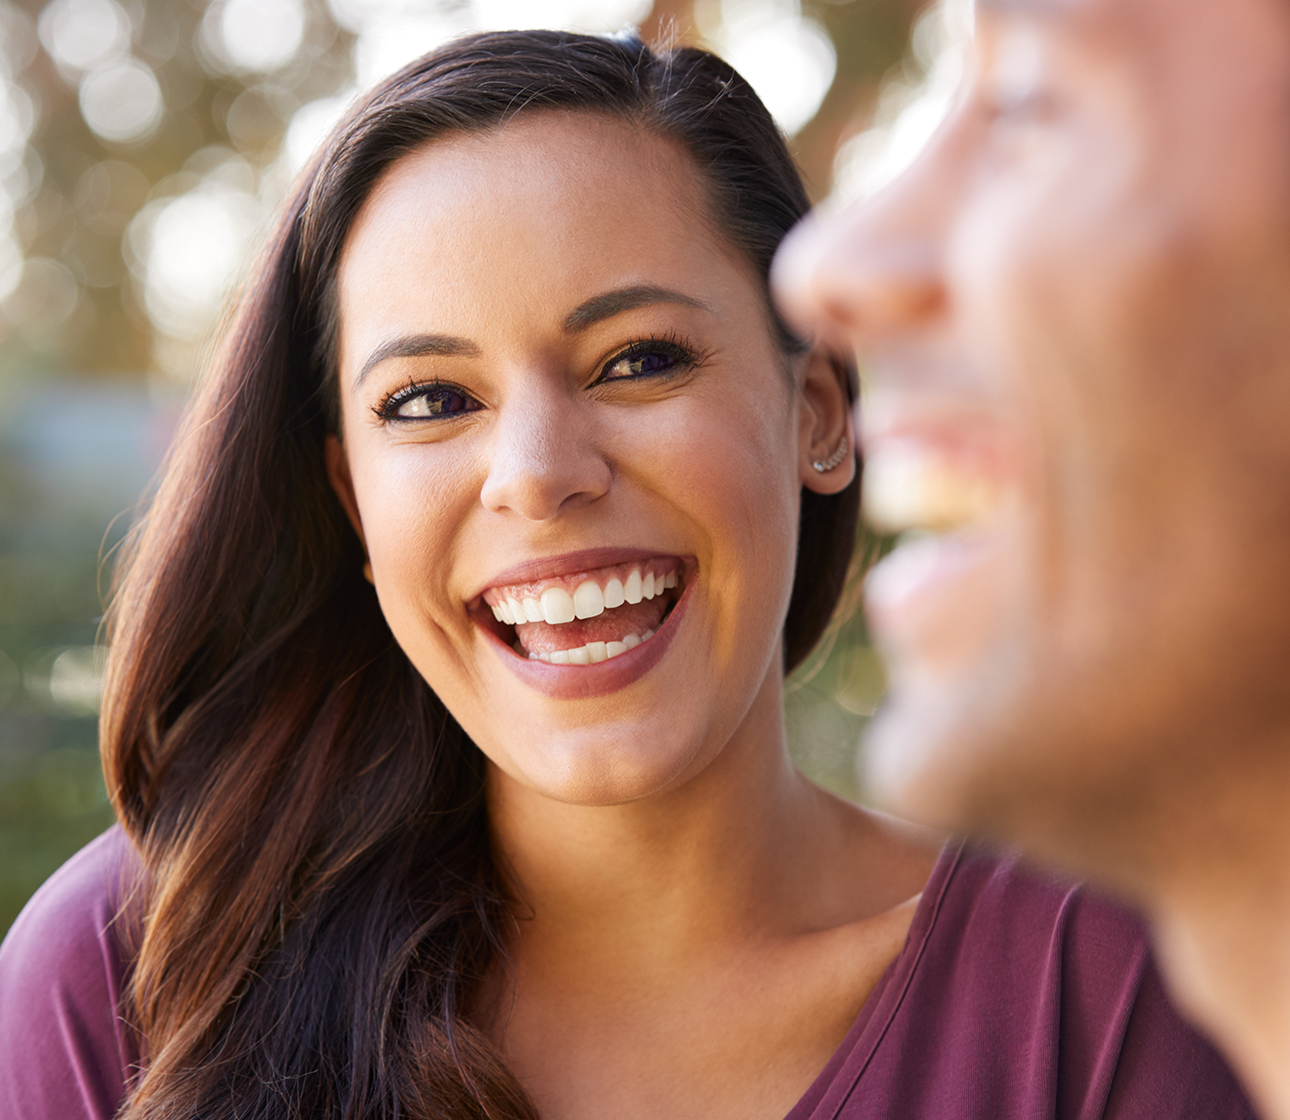 Contact Smiley Dental & Orthodontics for effective and affordable teeth whitening. Serving San Antonio and Dallas, TX and surrounding areas.